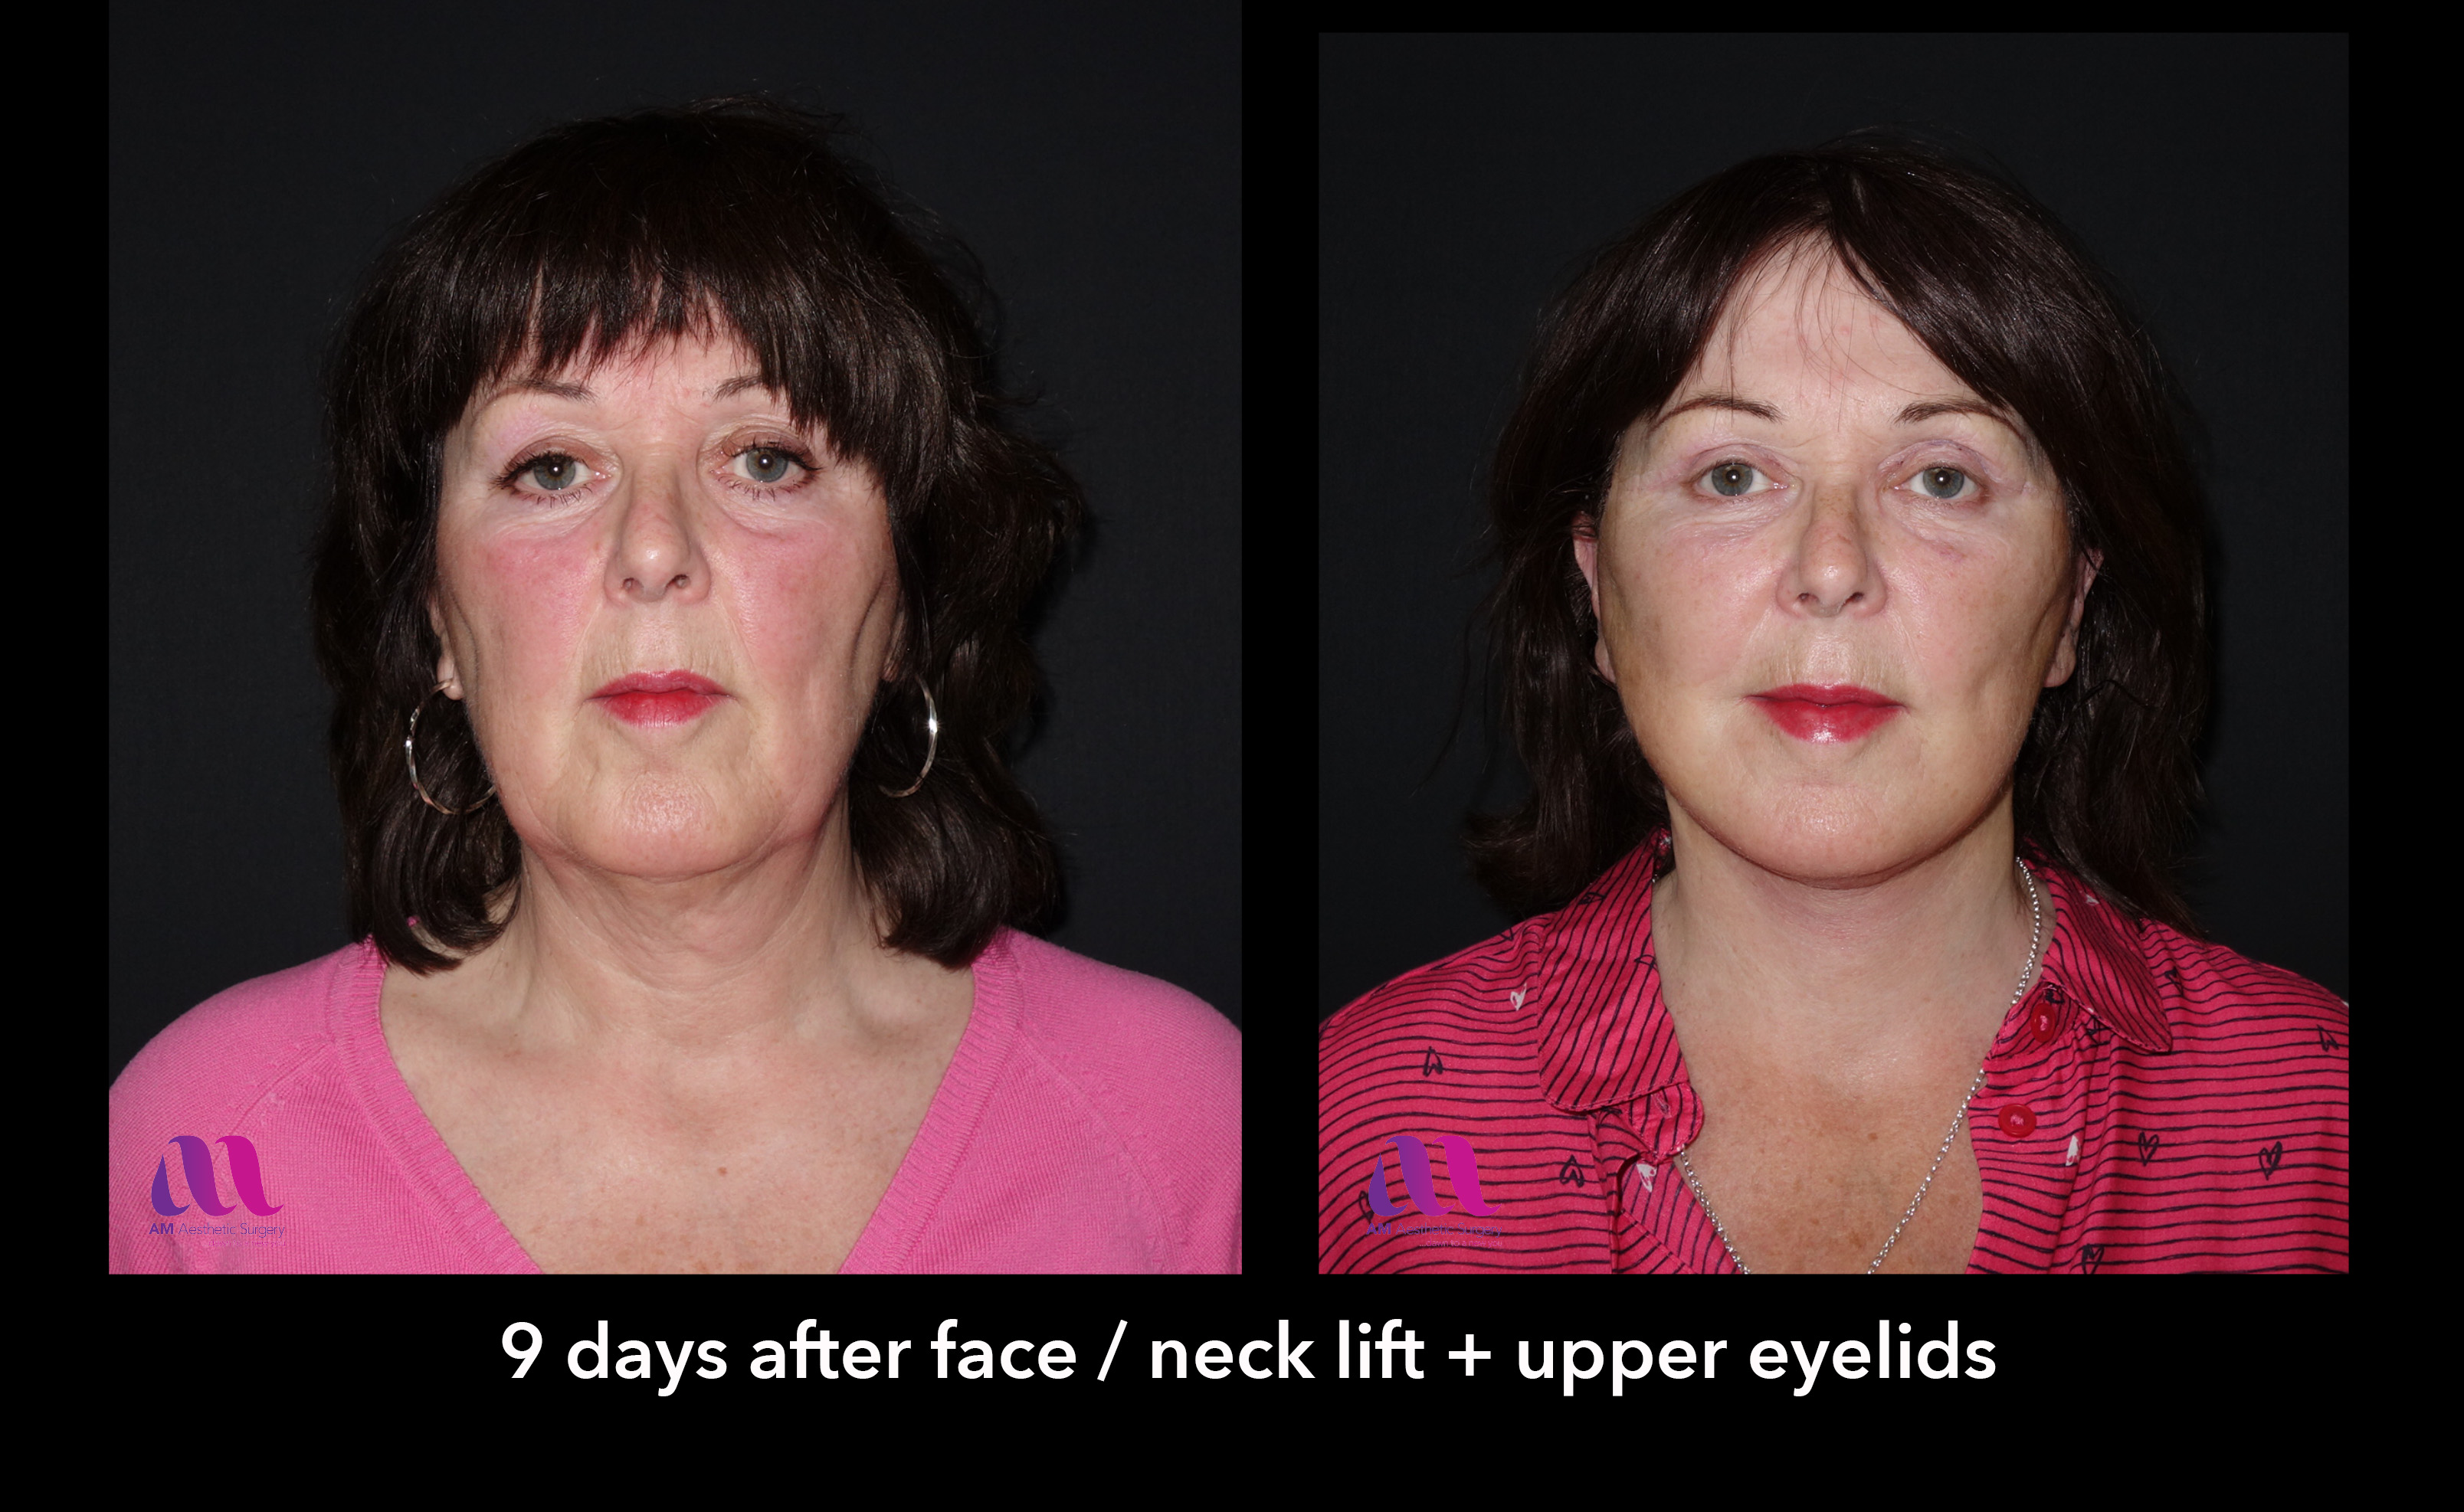 Face Lift +Upp Eyelids10a